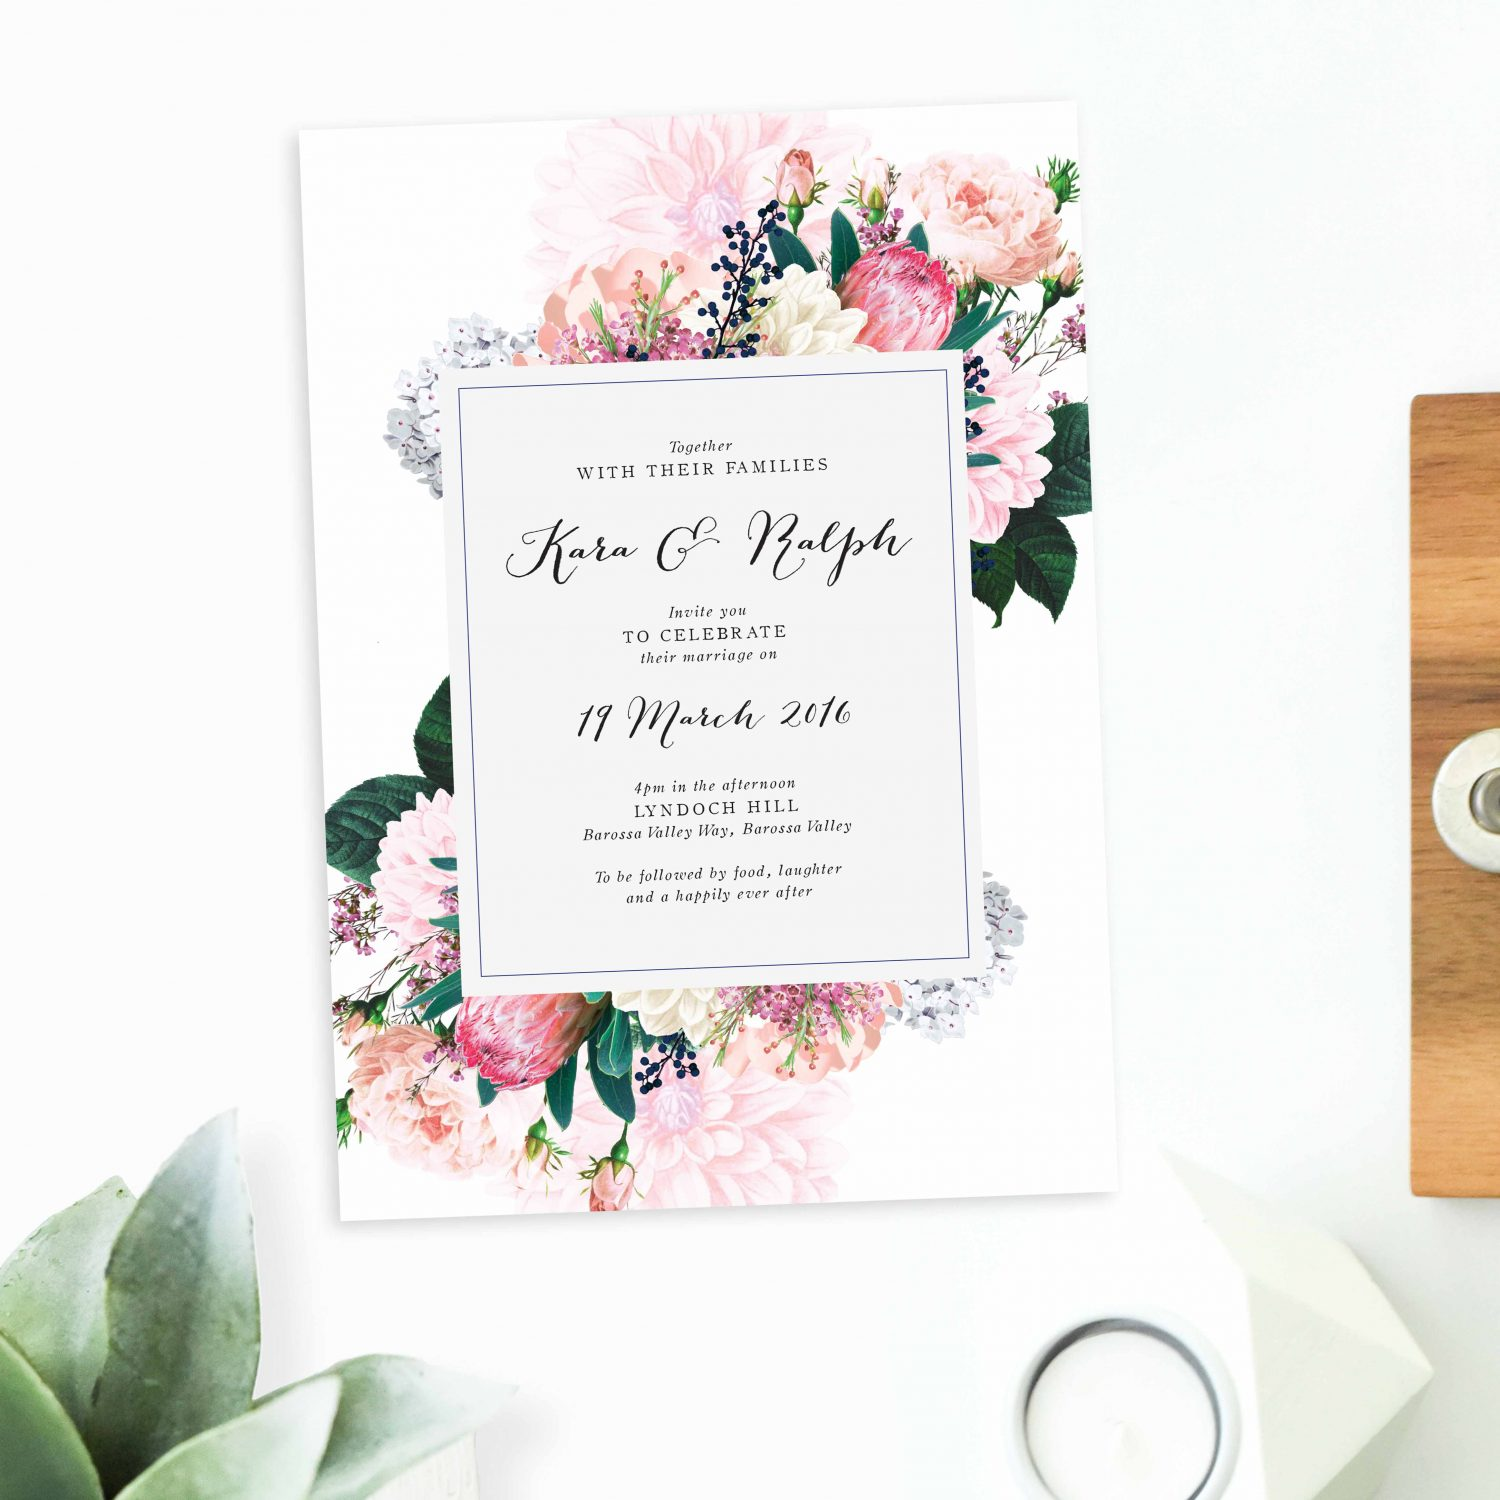 Wedding invitations sample pack by sail and swan native floral wedding invitations protea pink blush rose wedding stationery australia invites perth sydney melbourne brisbane stopboris